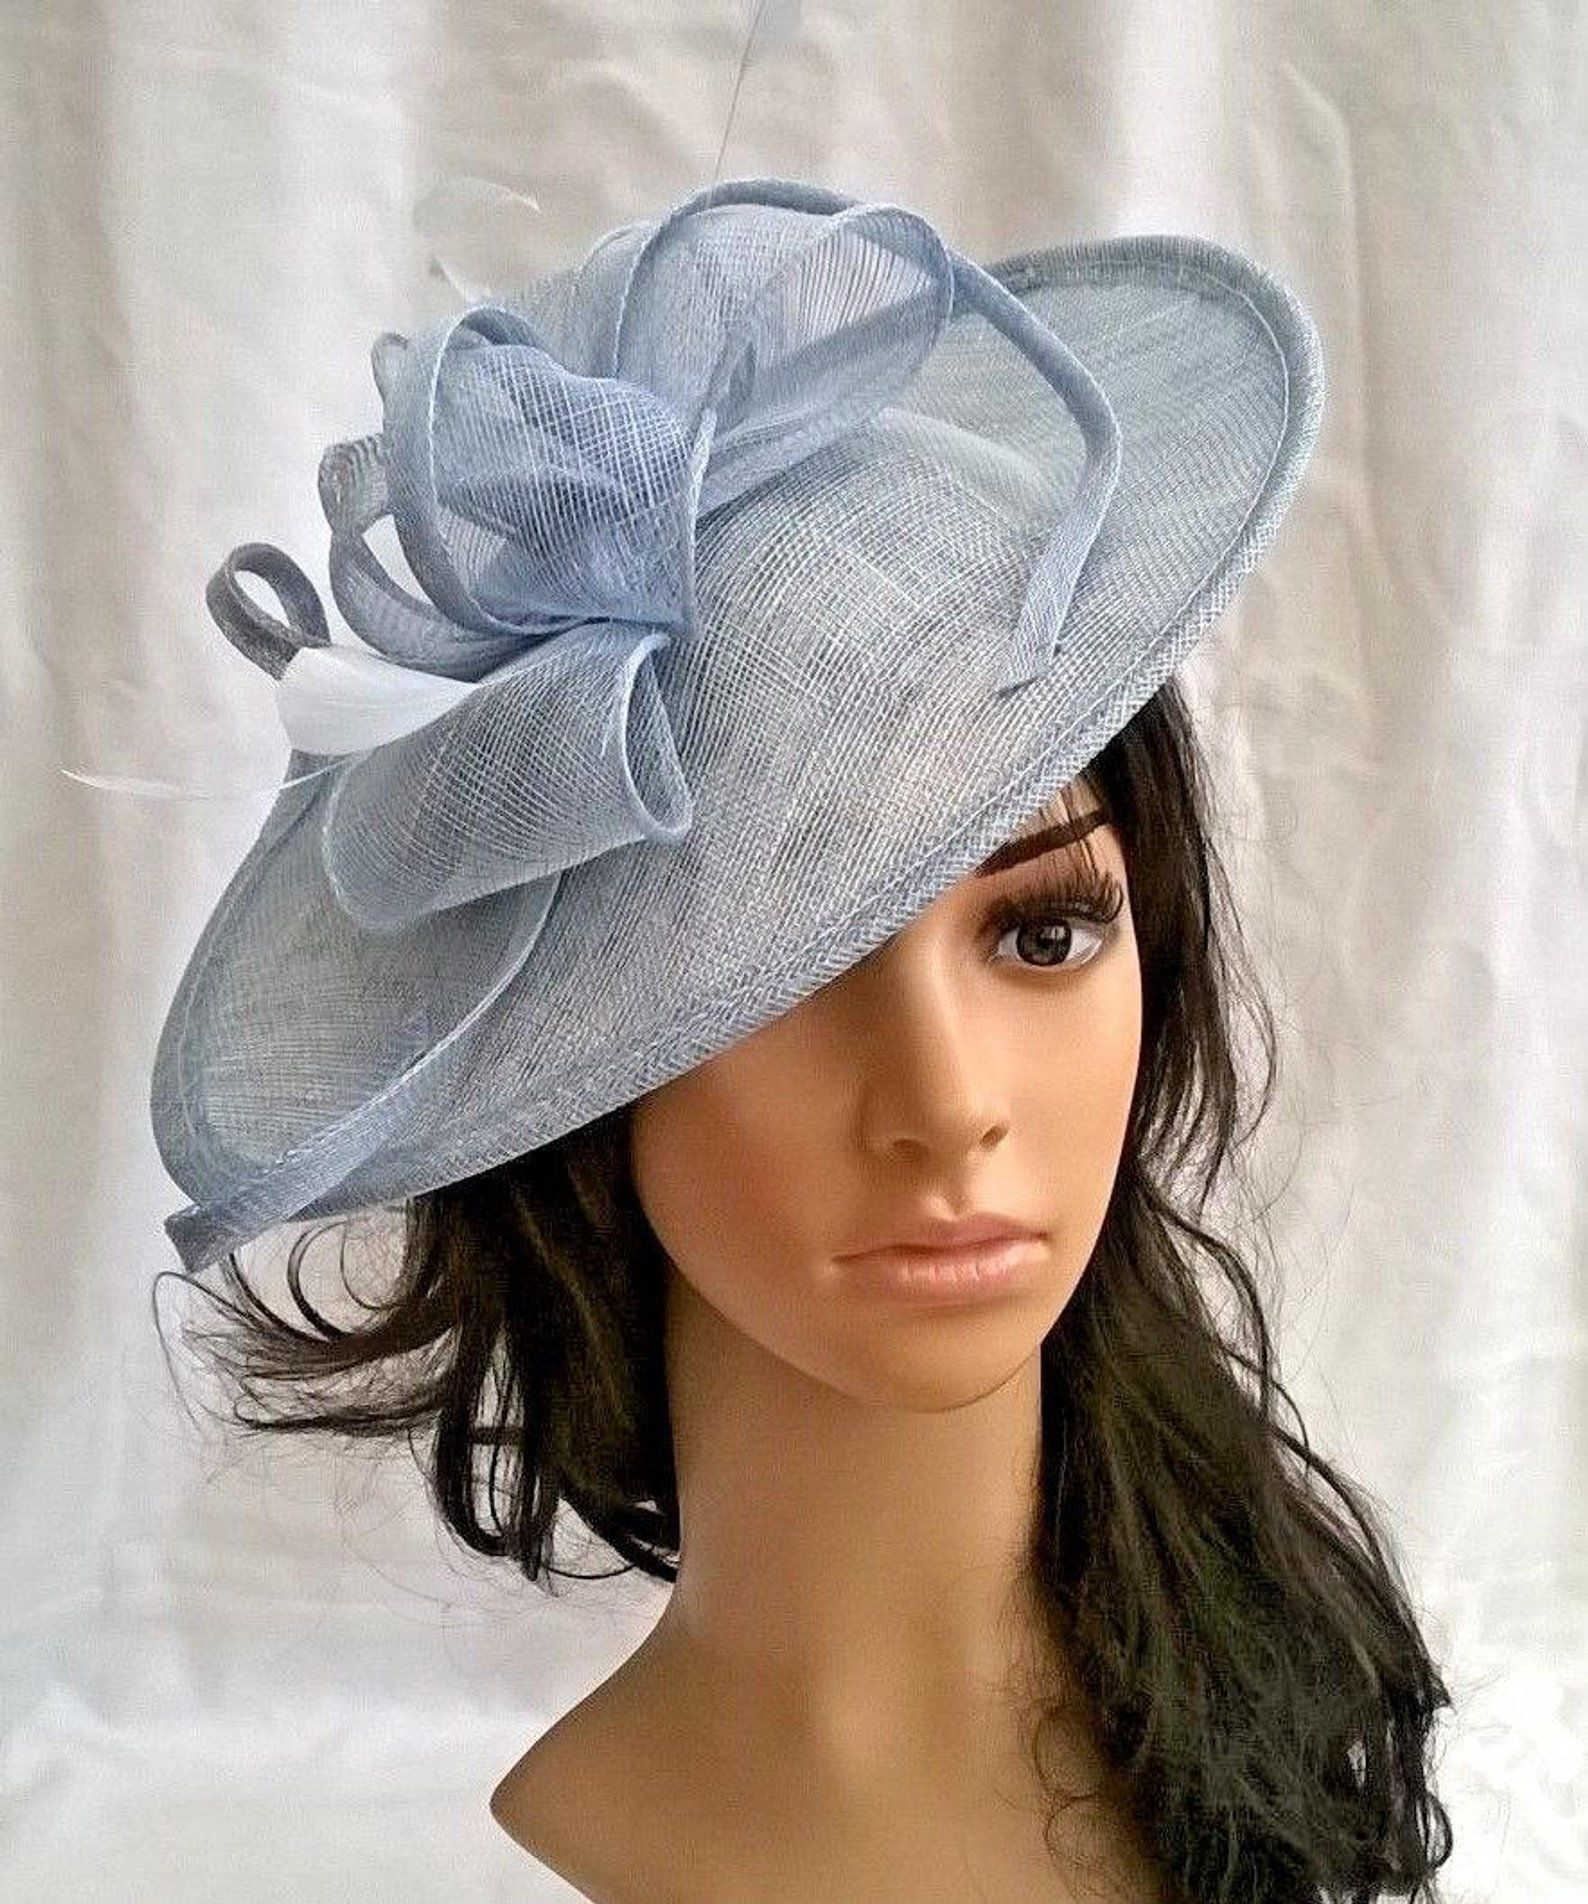 cc424e062a Jessica.Stunning Powder Blue Sinamay Shaped disc Fascinator with ...